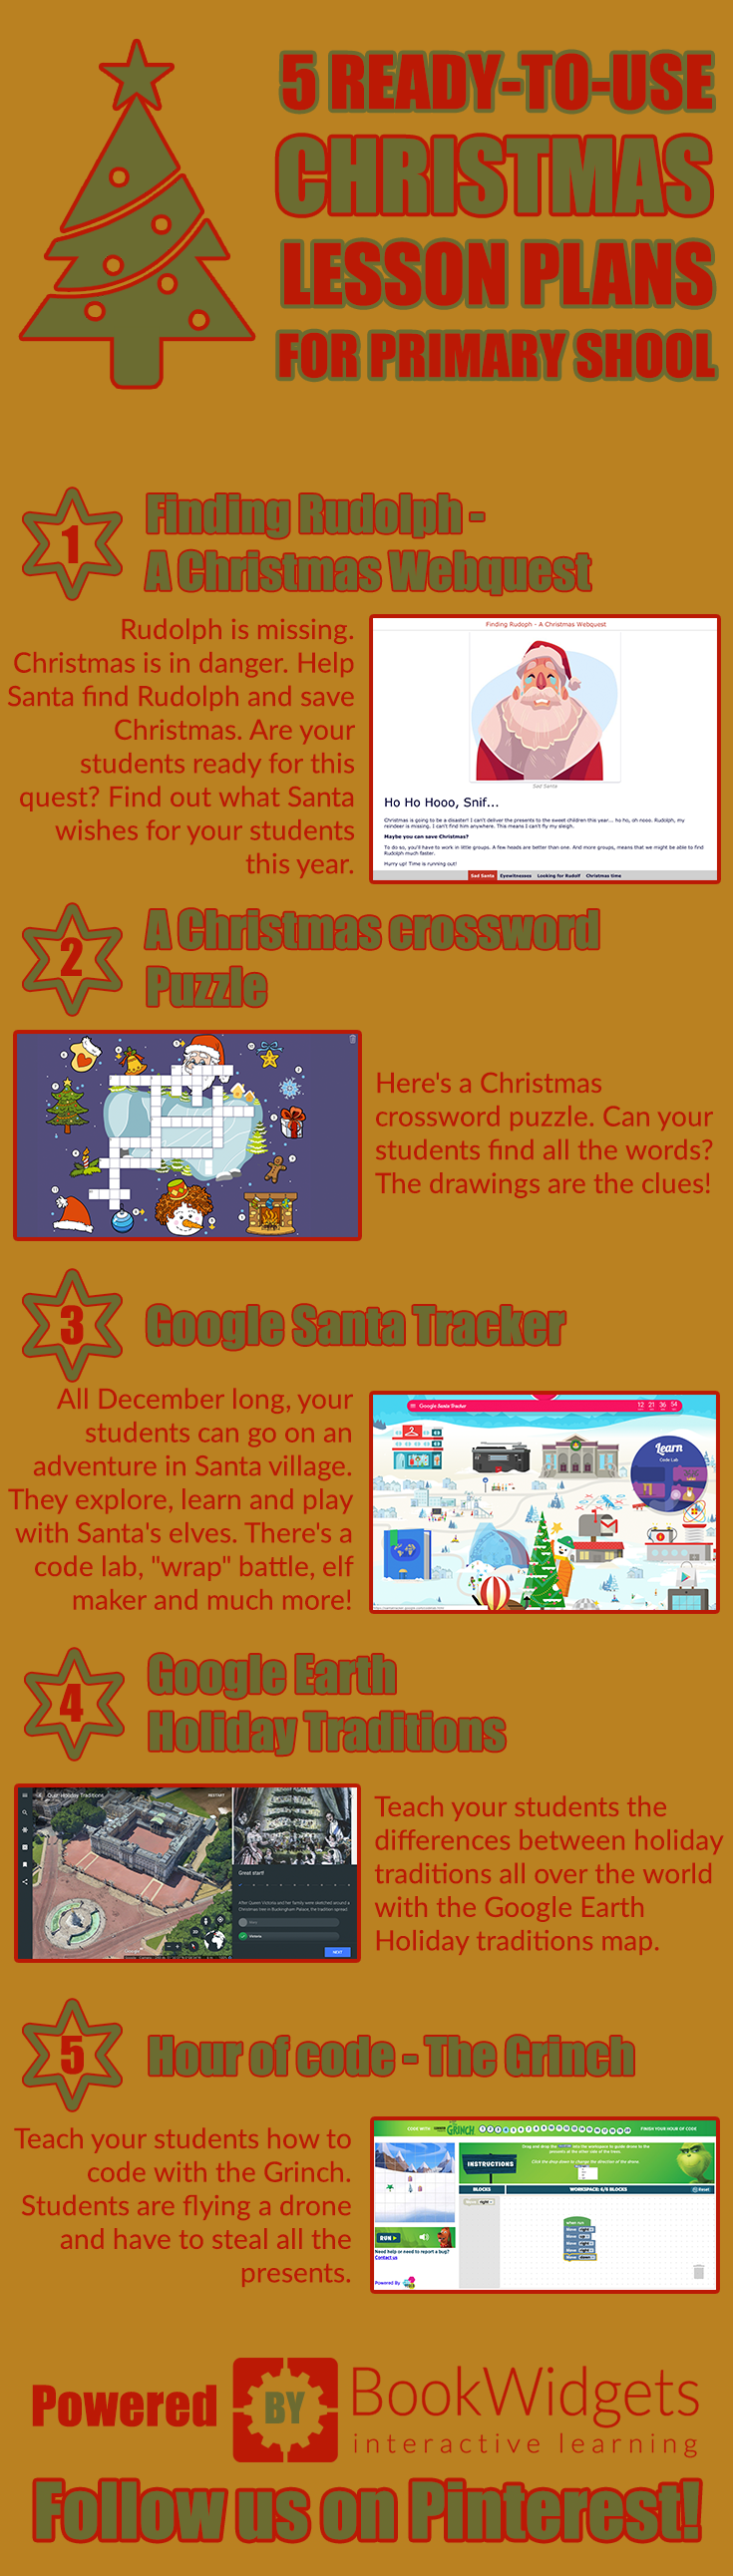 5 ready-to-use Christmas lesson plans for primary school students